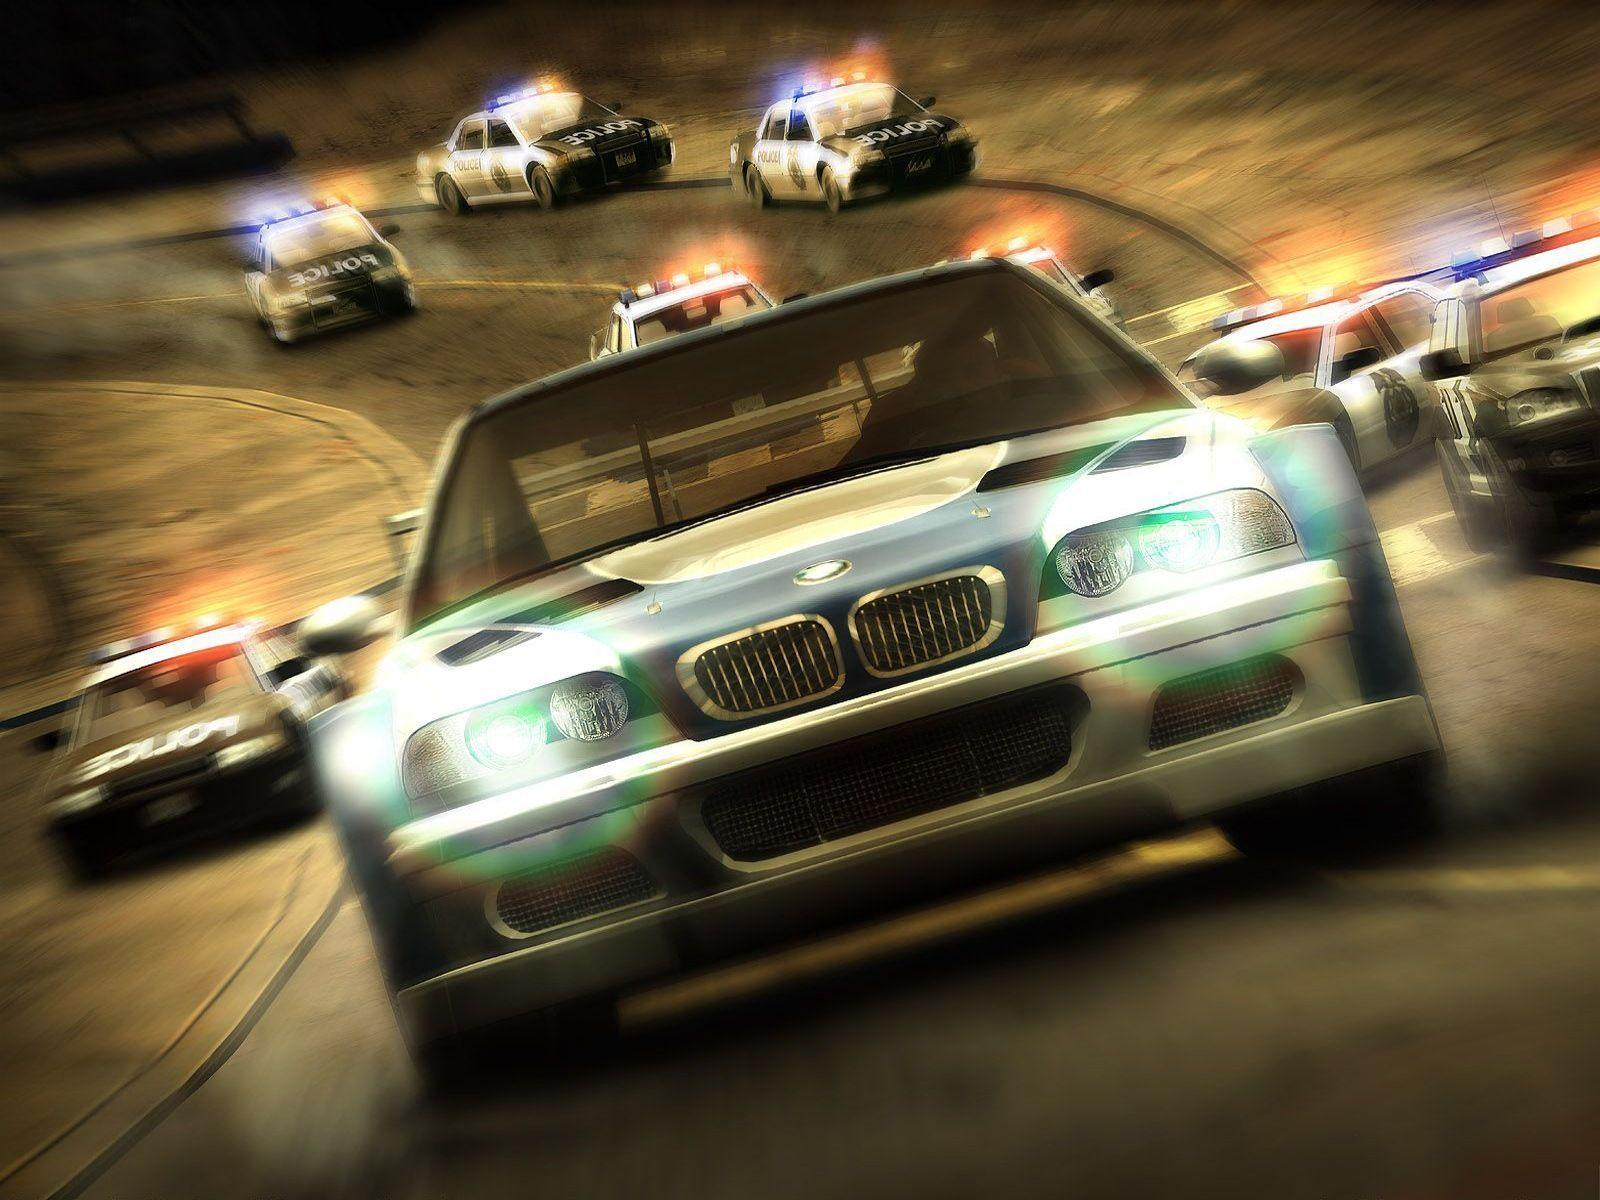 Wallpapers HD: Need For Speed Wallpapers Full HD